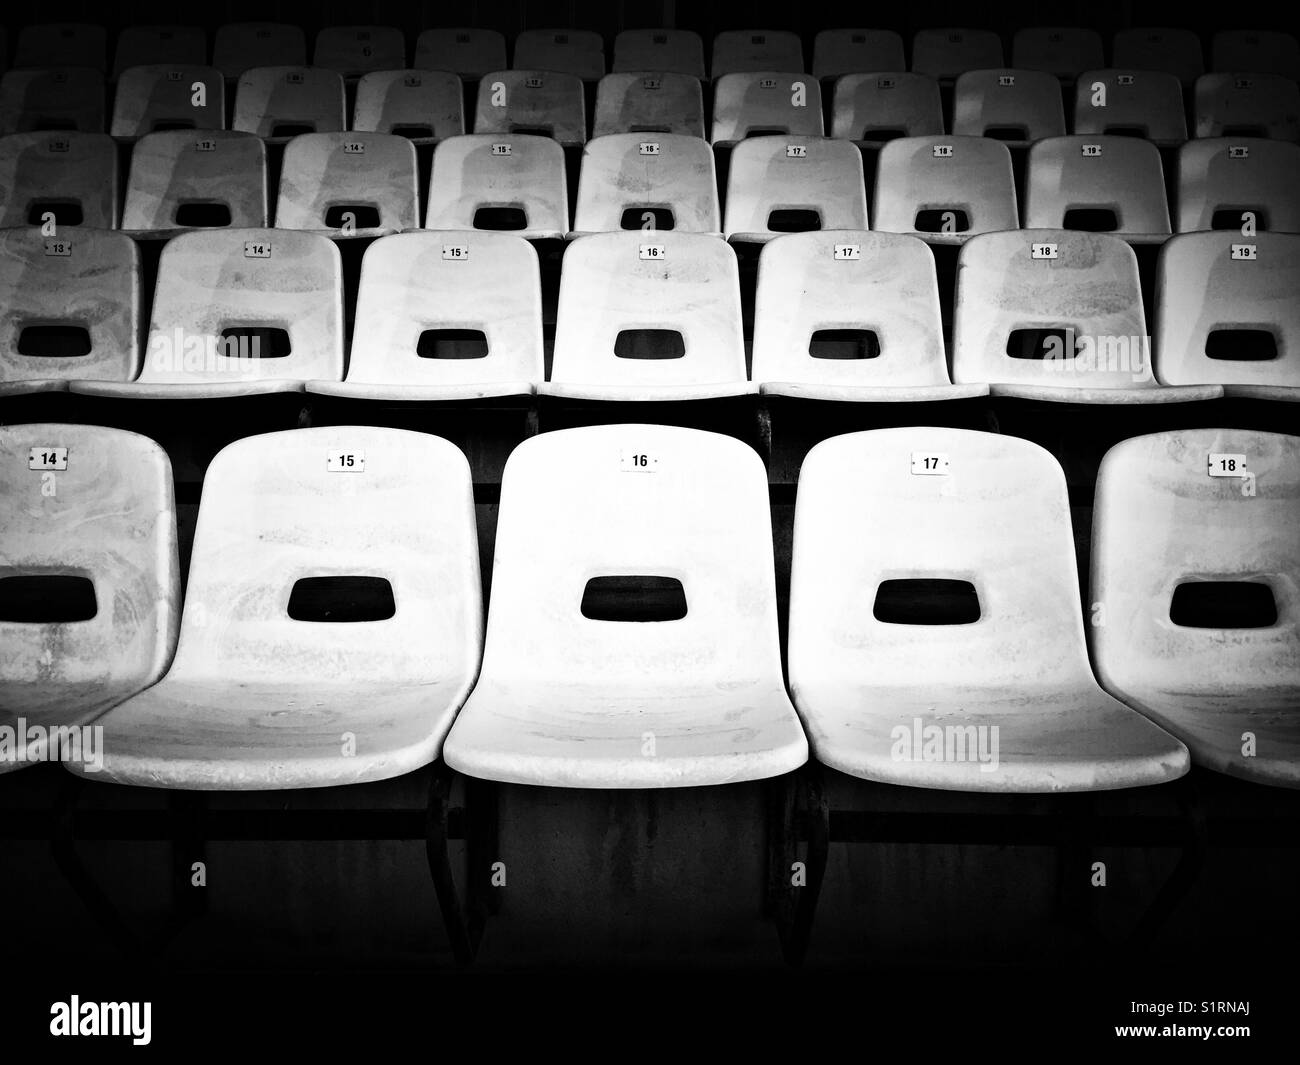 Empty seats at sports arena - Stock Image